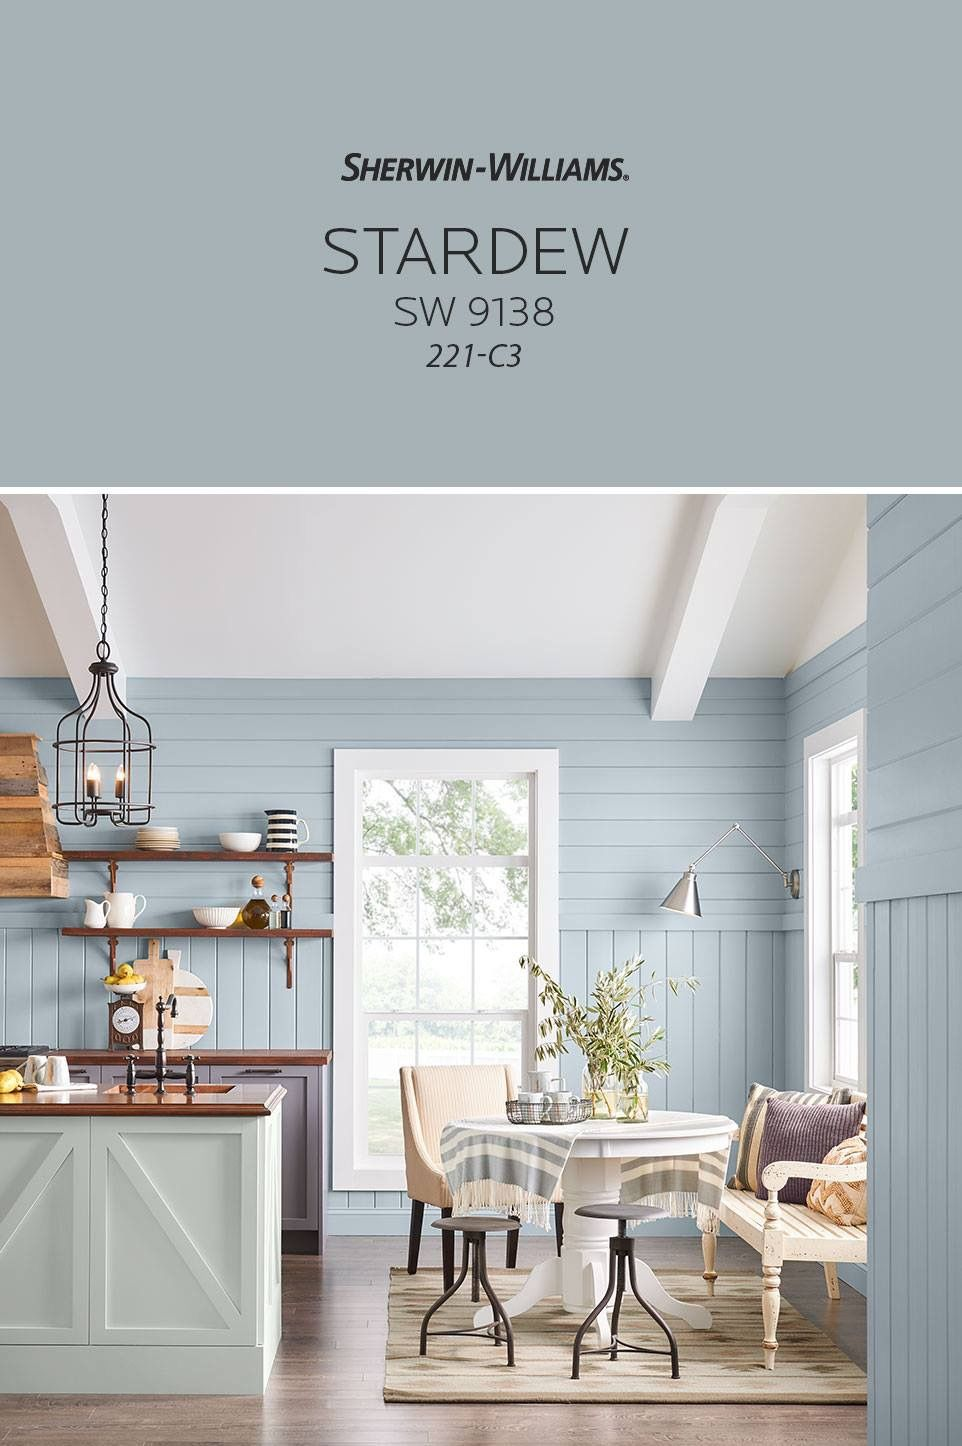 Sherwin Williams Stardew Home Paint Colors For Home Interior